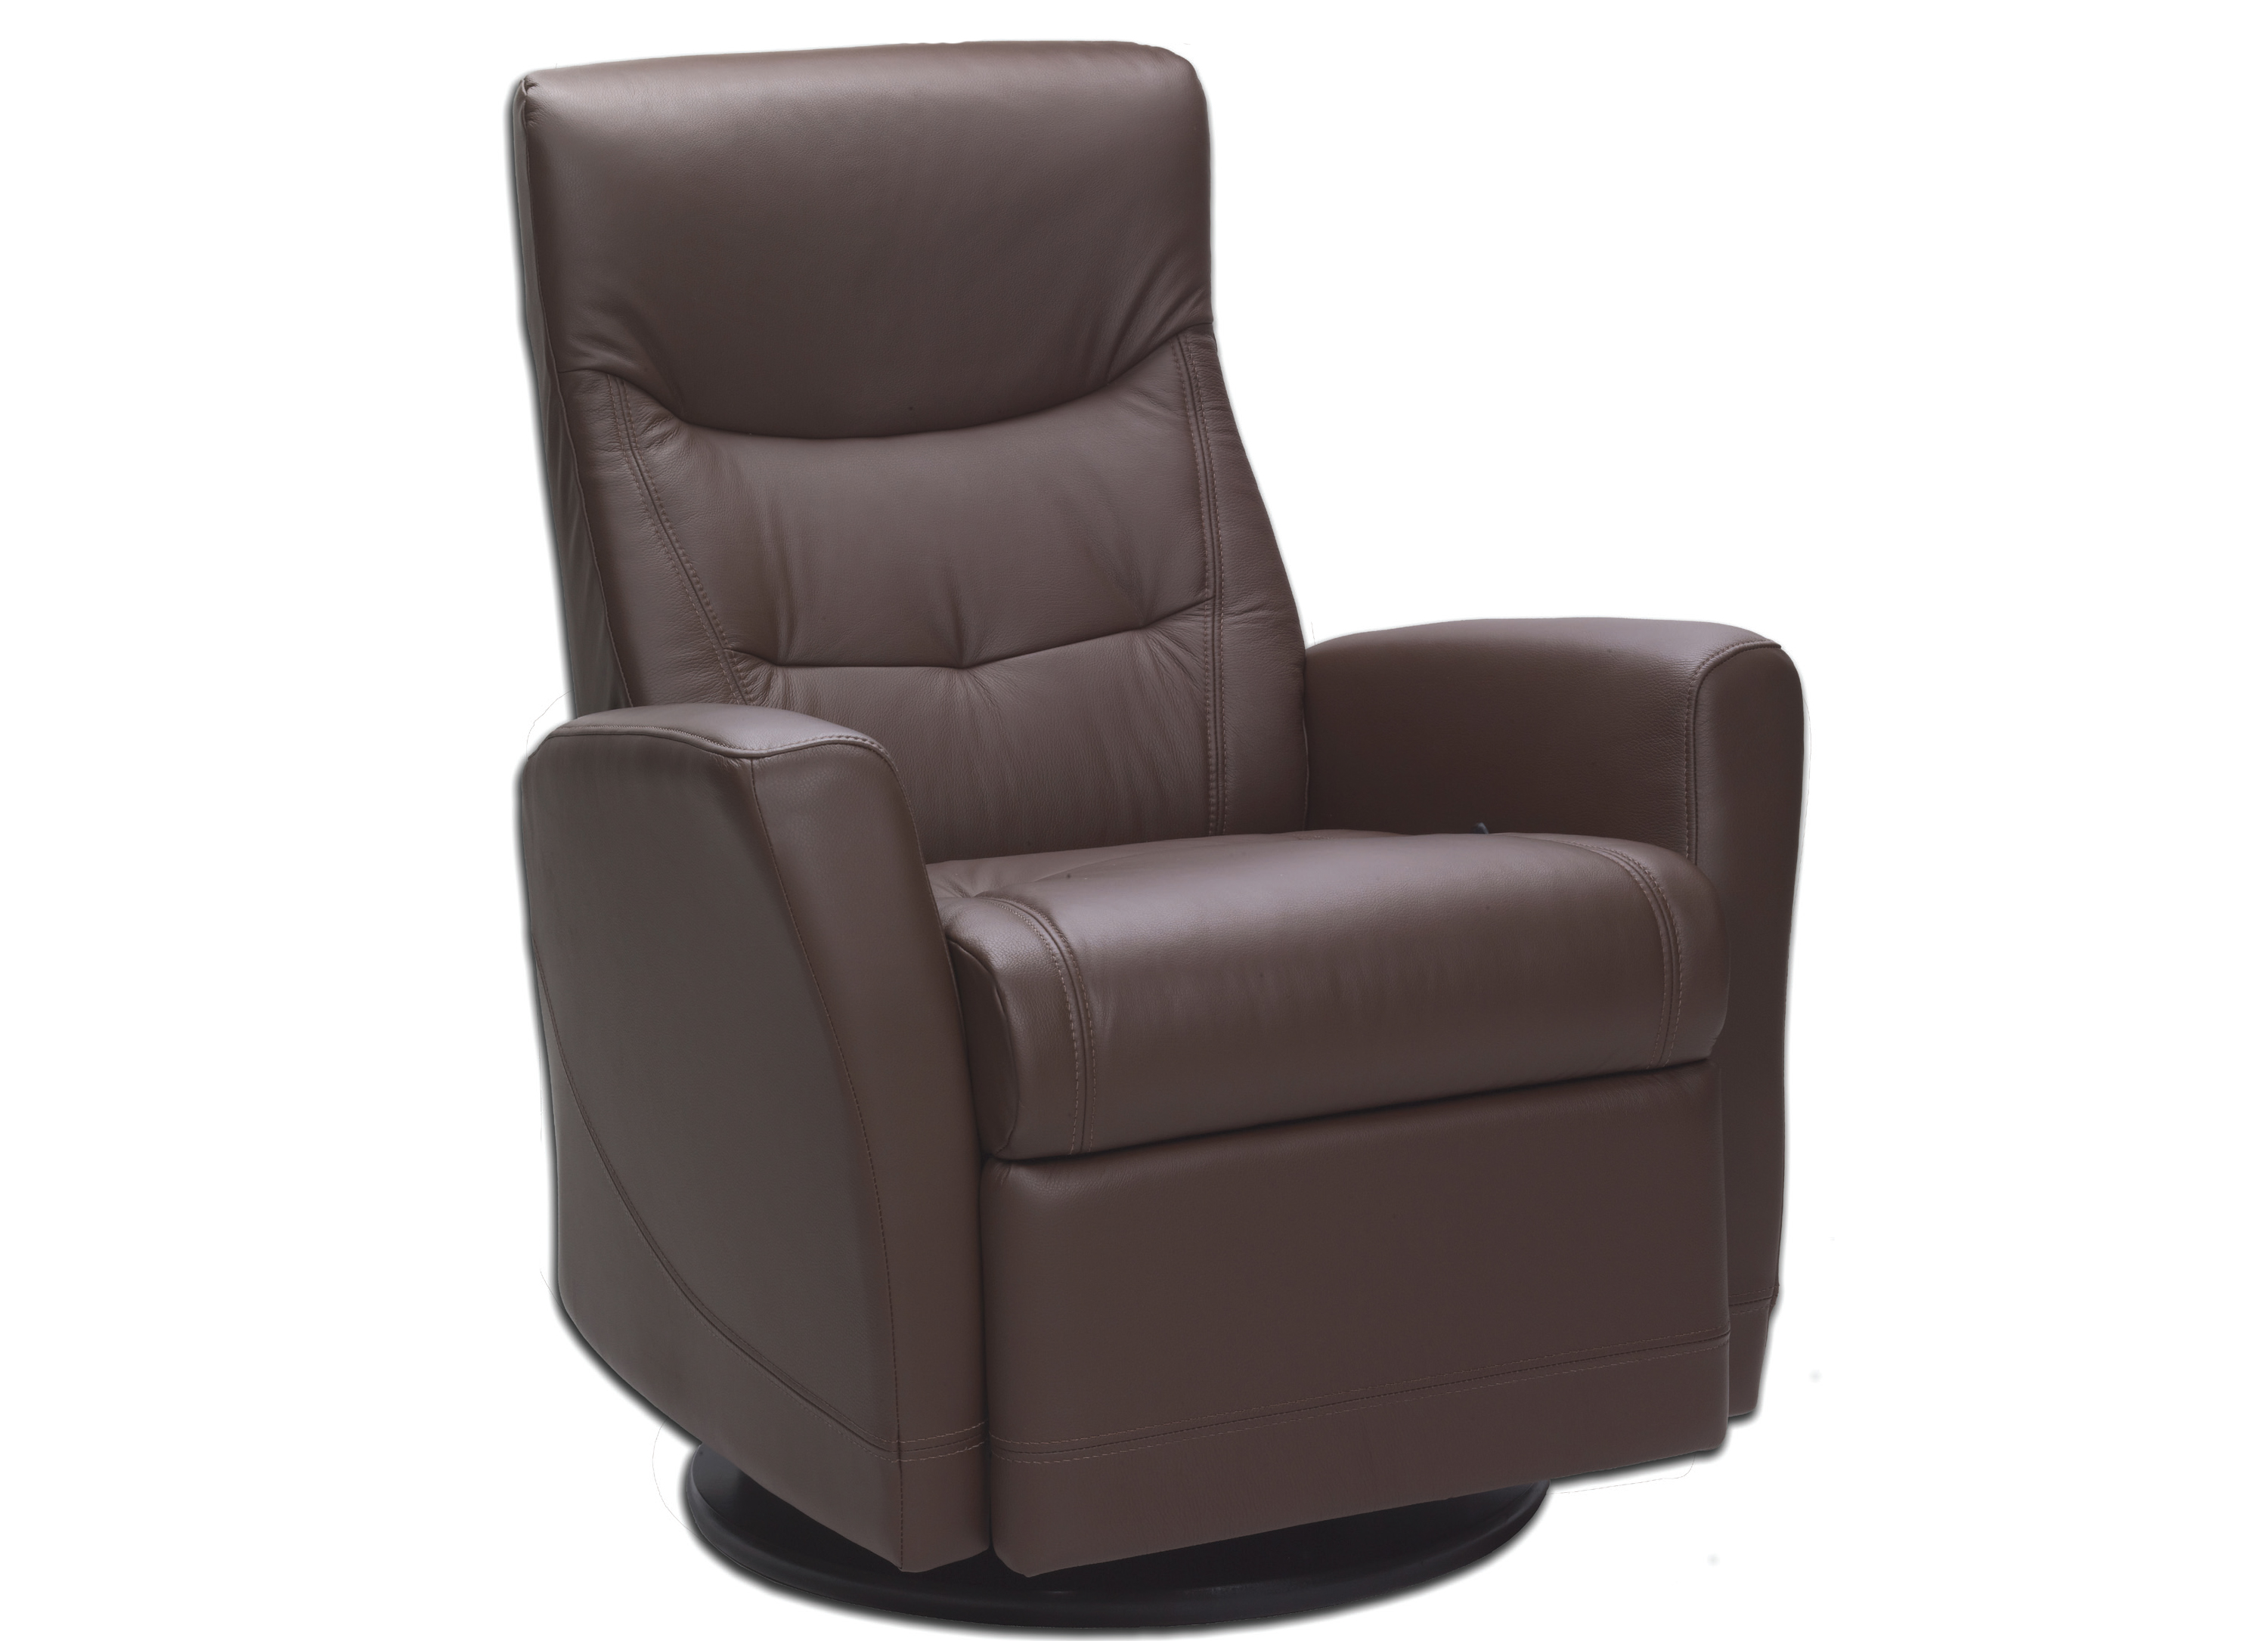 Gentil Fjords Oslo Ergonomic Swing Recliner Chair Norwegian Scandinavian Lounger.